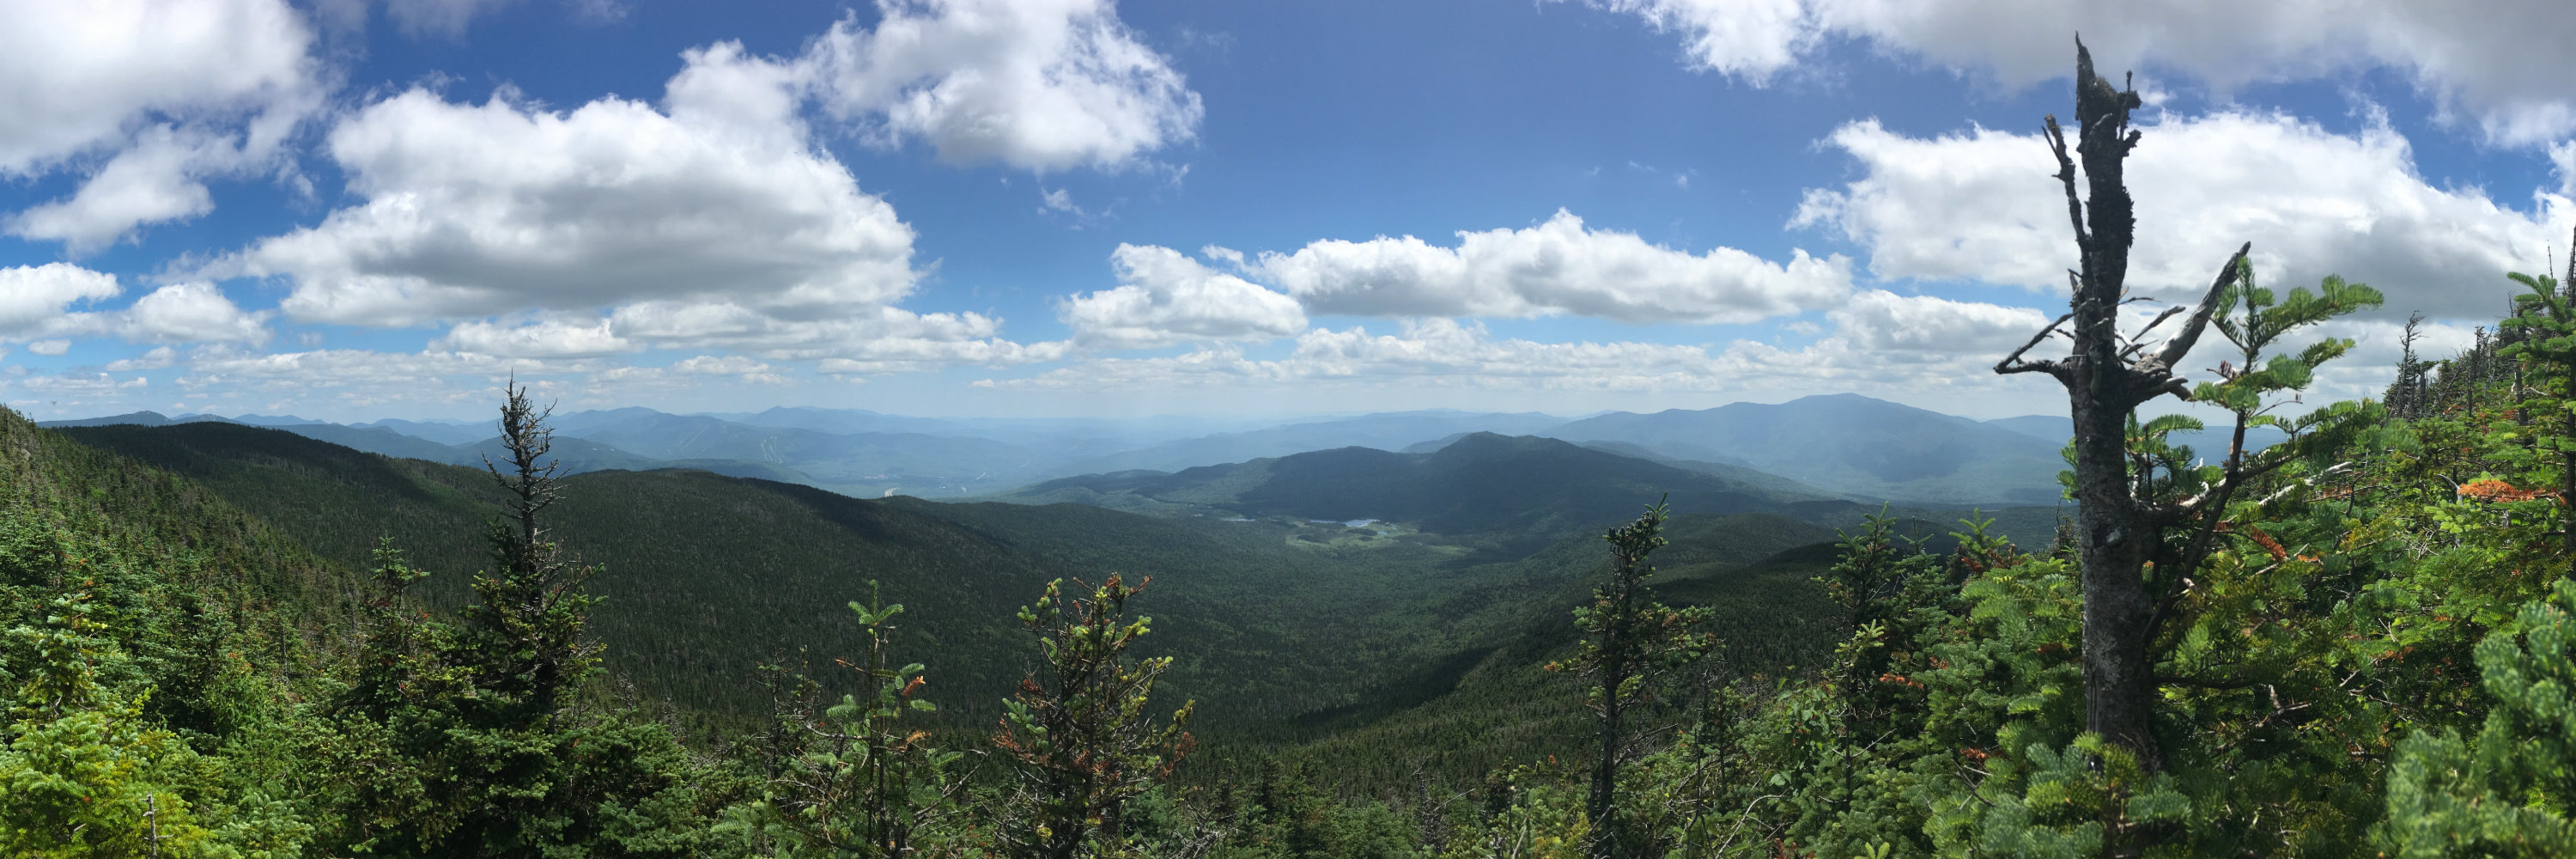 Moosilauke_From_Kinsman_20190713